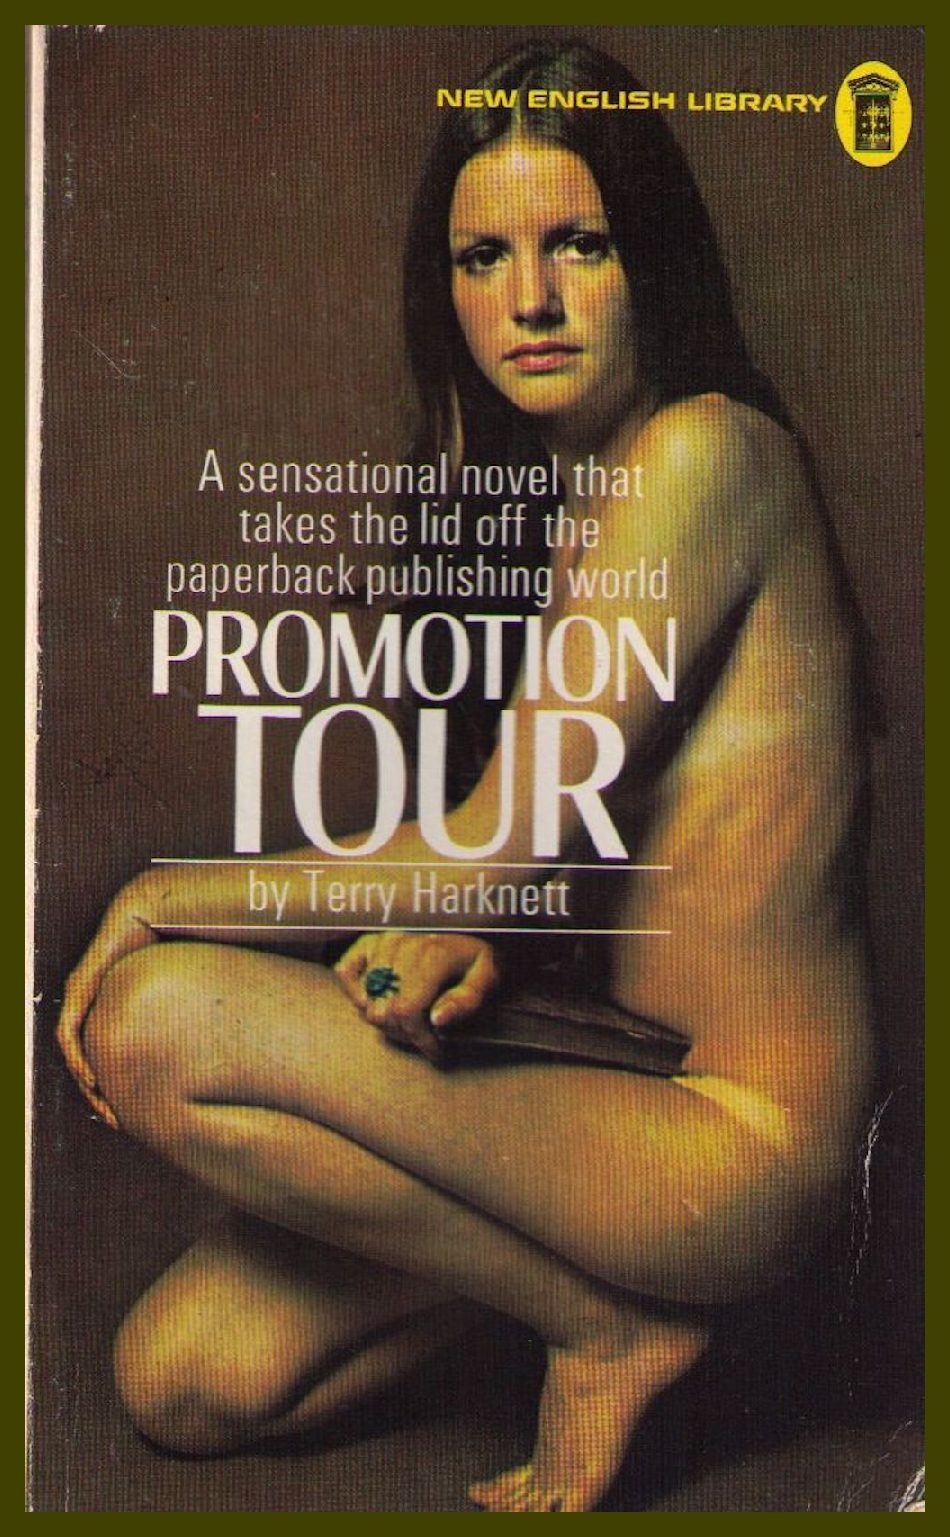 On this tour you'll be signing copies at the finest strip clubs in Lancashire